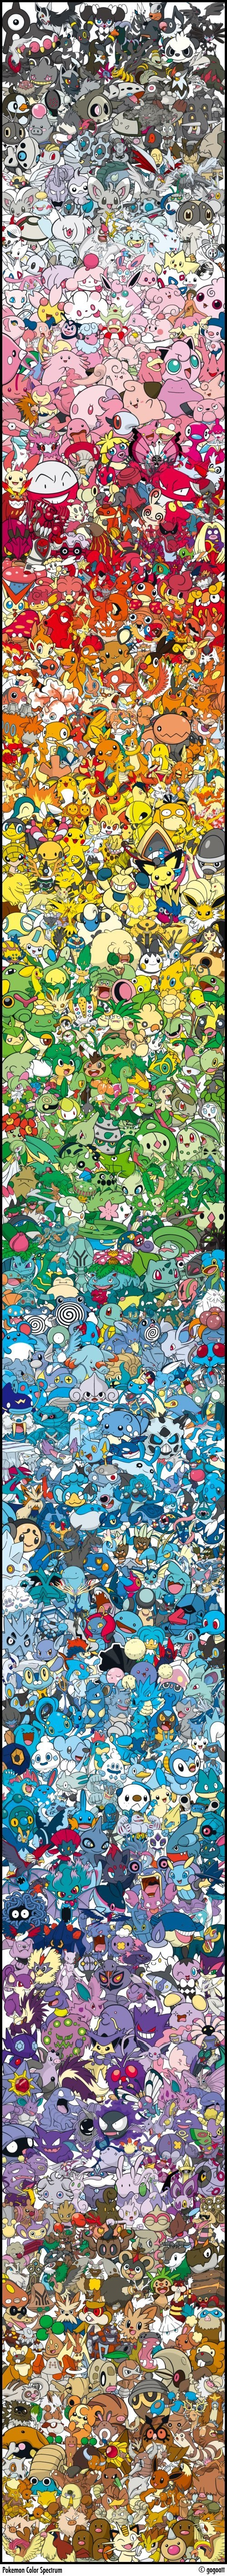 Every Single Pokémon Arranged by Color